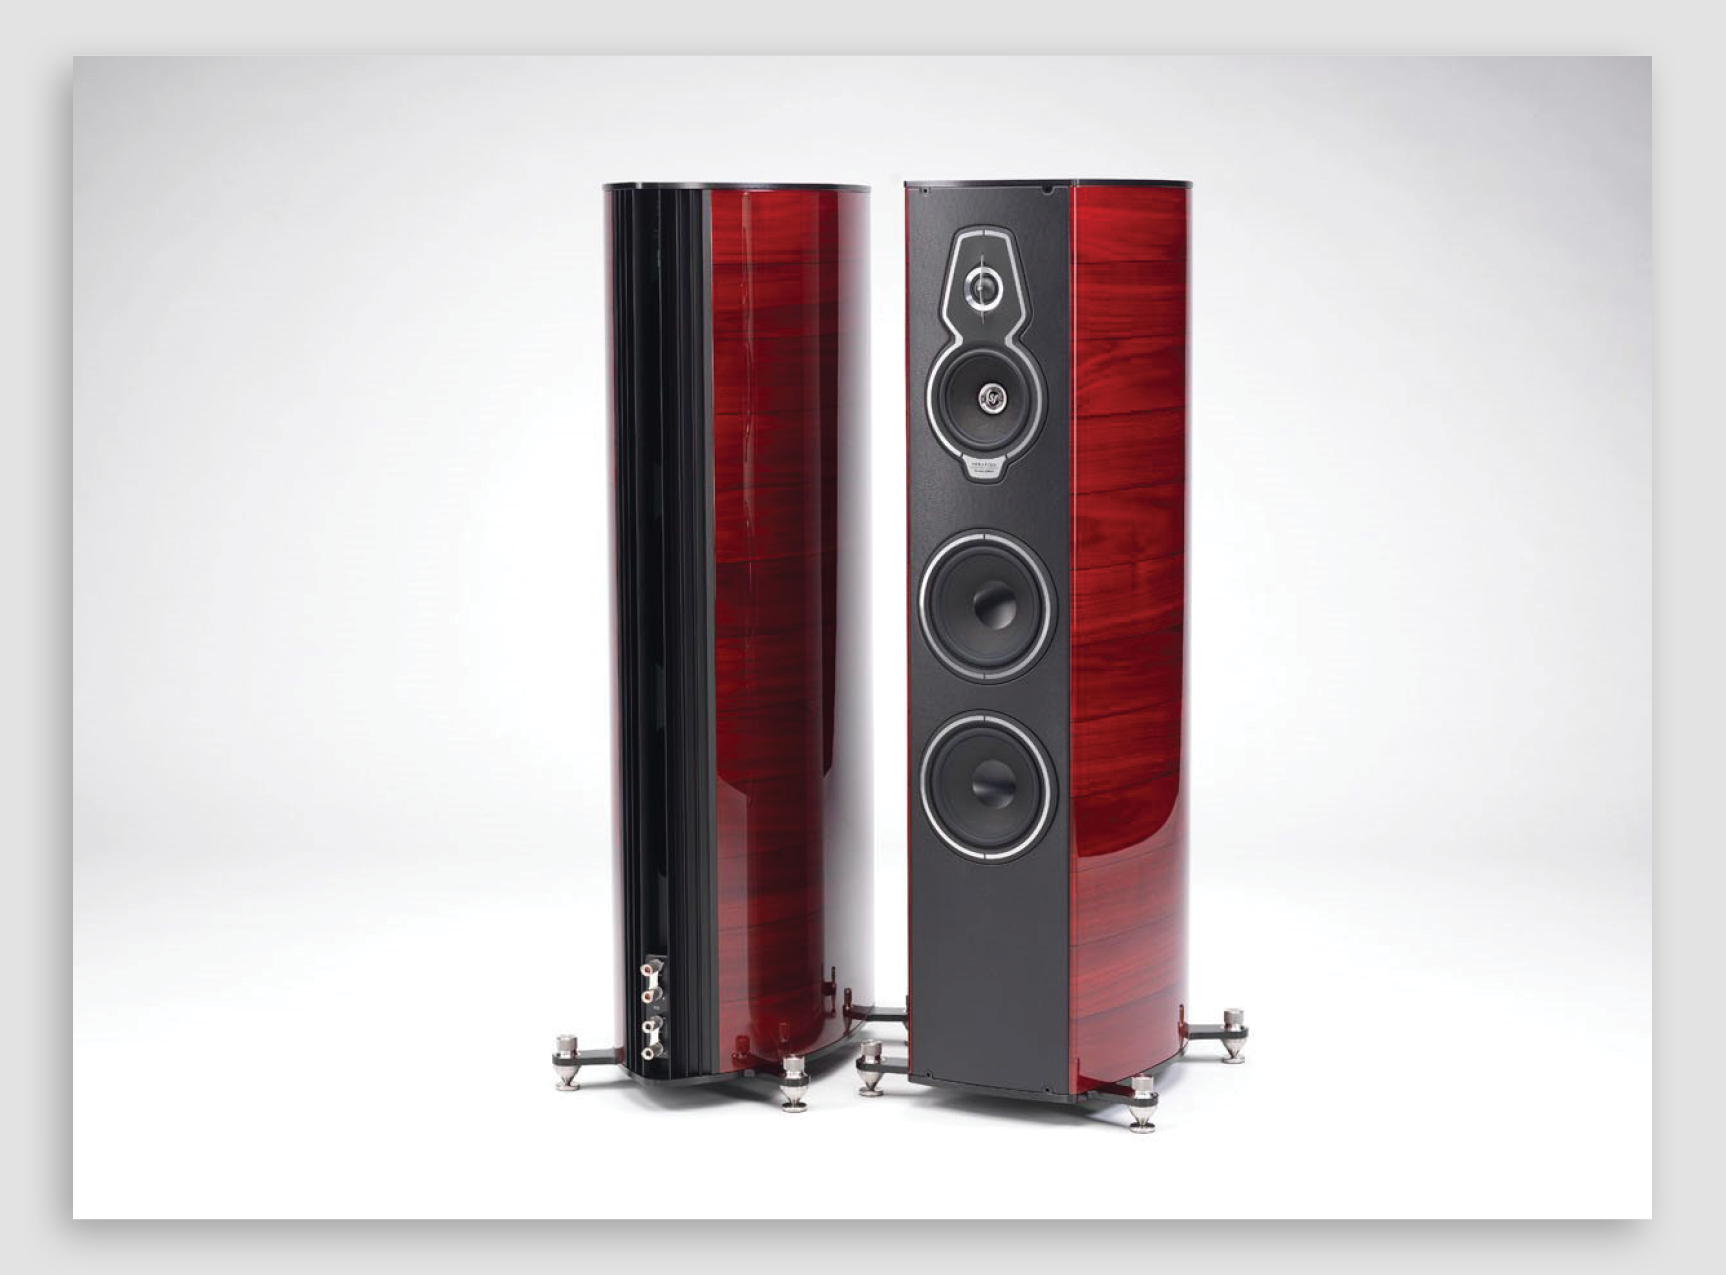 Sonus Faber Visit | Introducing Serafino